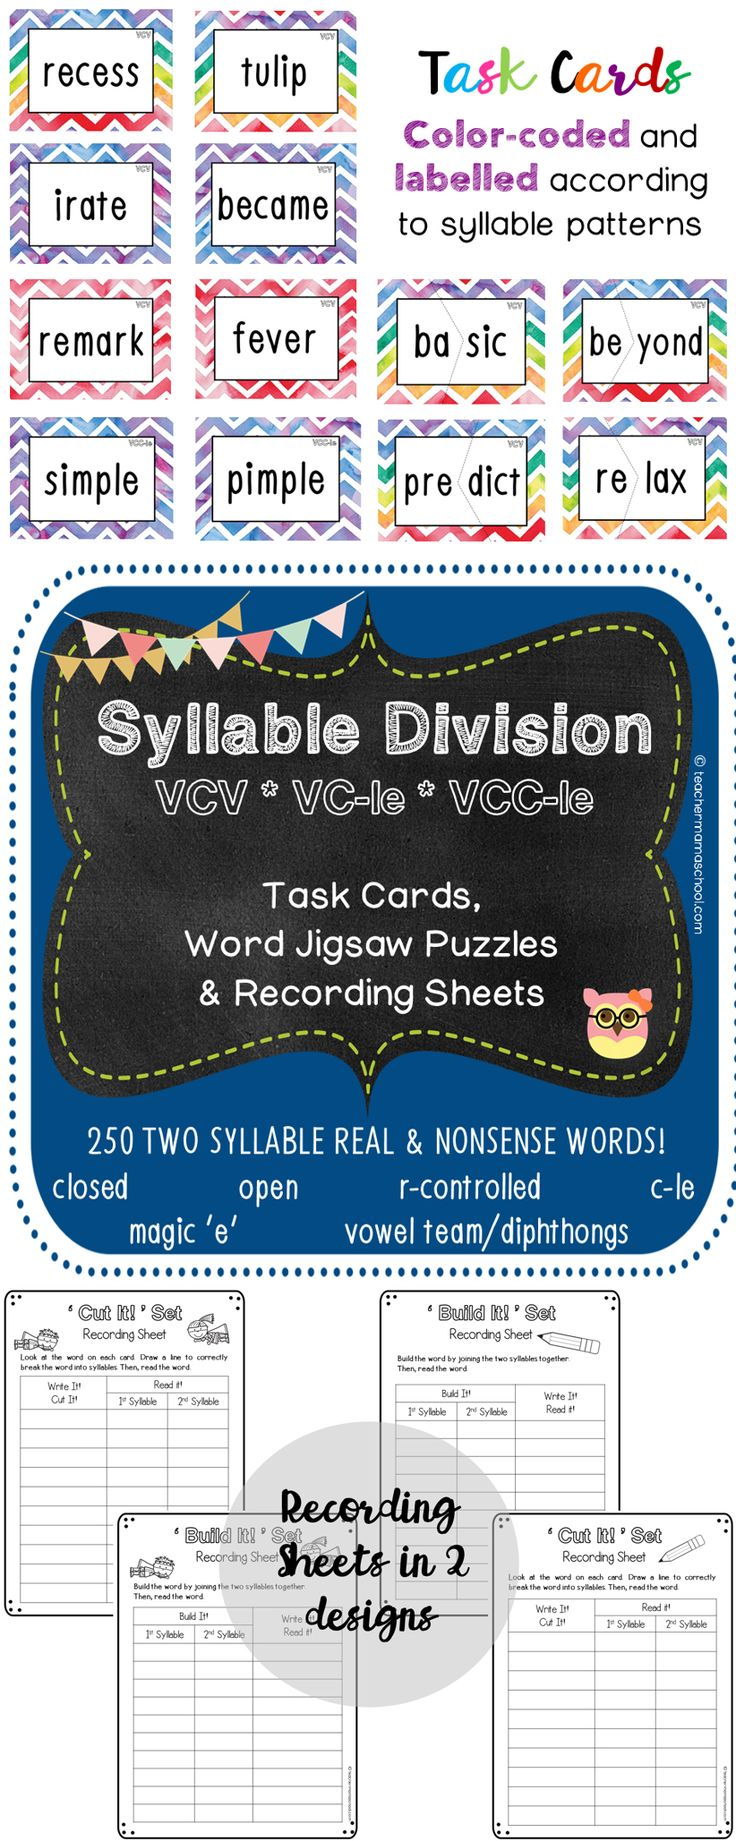 syllable division | vcv | final stable syllables| This pack consists of 2 sets – 'Cut It!' Set and 'Build It!' Set.  In each set, there is/are:  ✿ 250 word cards with the VCV, VC-le and VCC-le syllable patterns (includes both REAL and NONSENSE words) ✿ 1 Recording Sheet (in 2 slightly different designs)